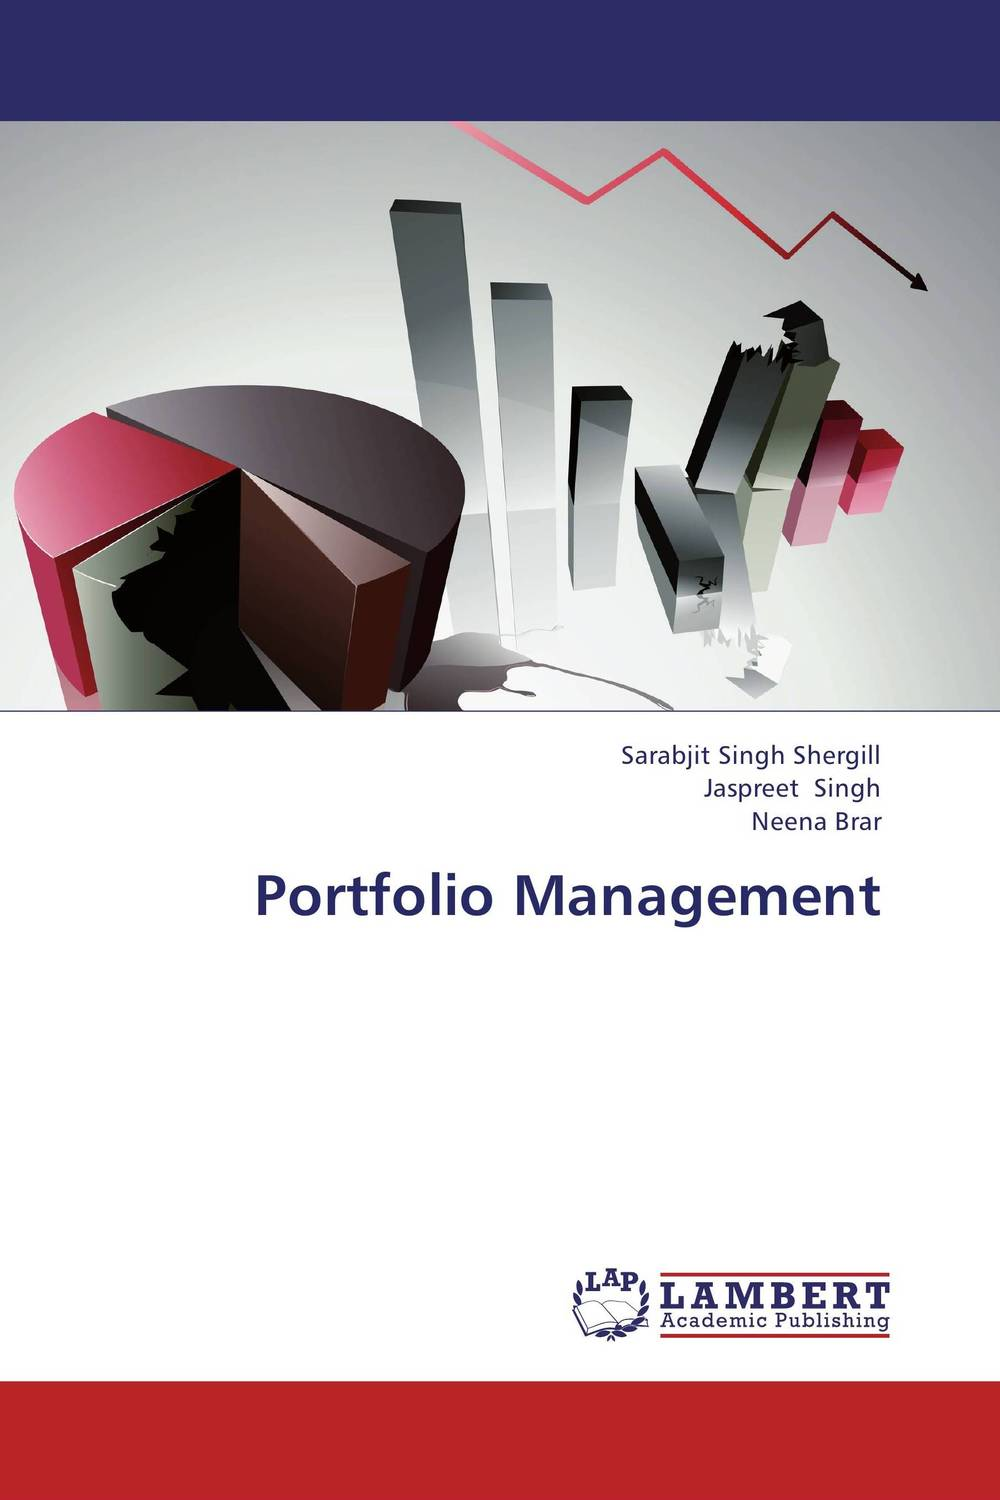 Фото Portfolio Management finance and investments